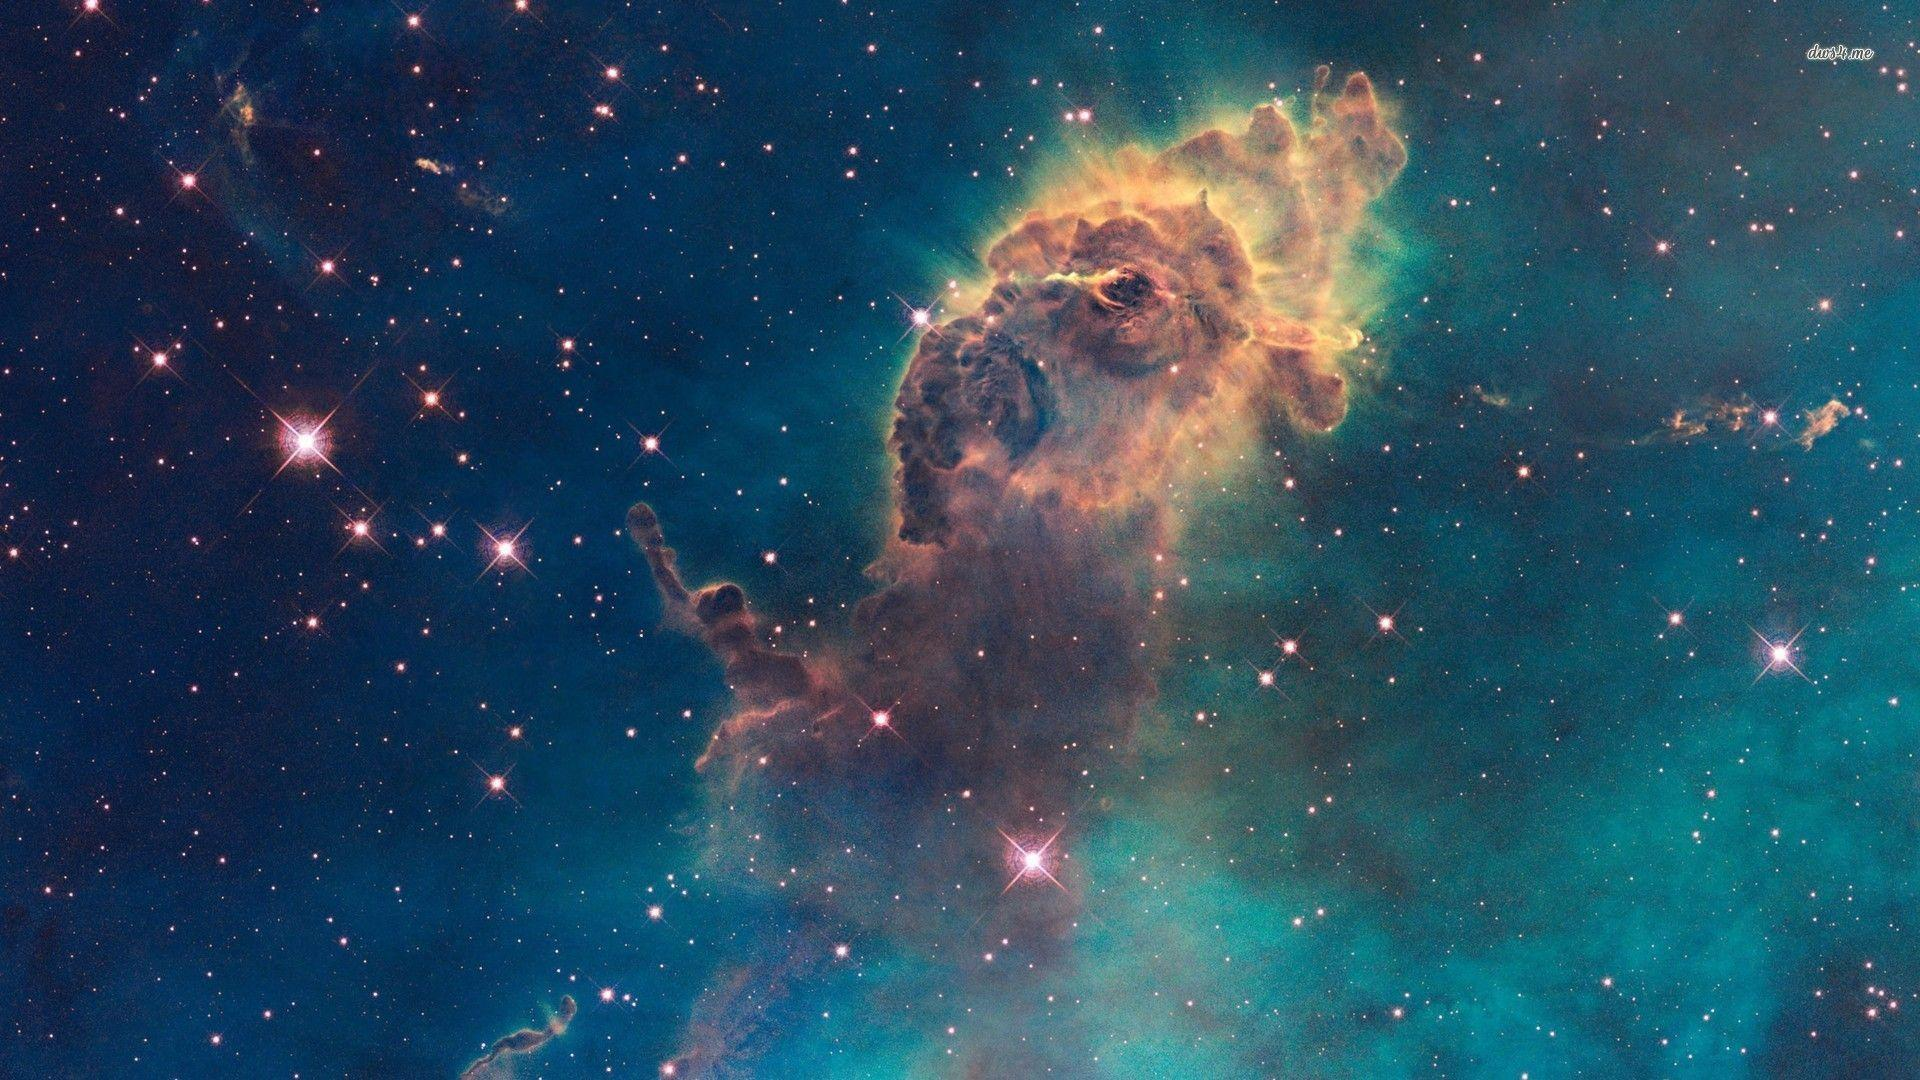 true nasa nebula wallpaper - photo #39